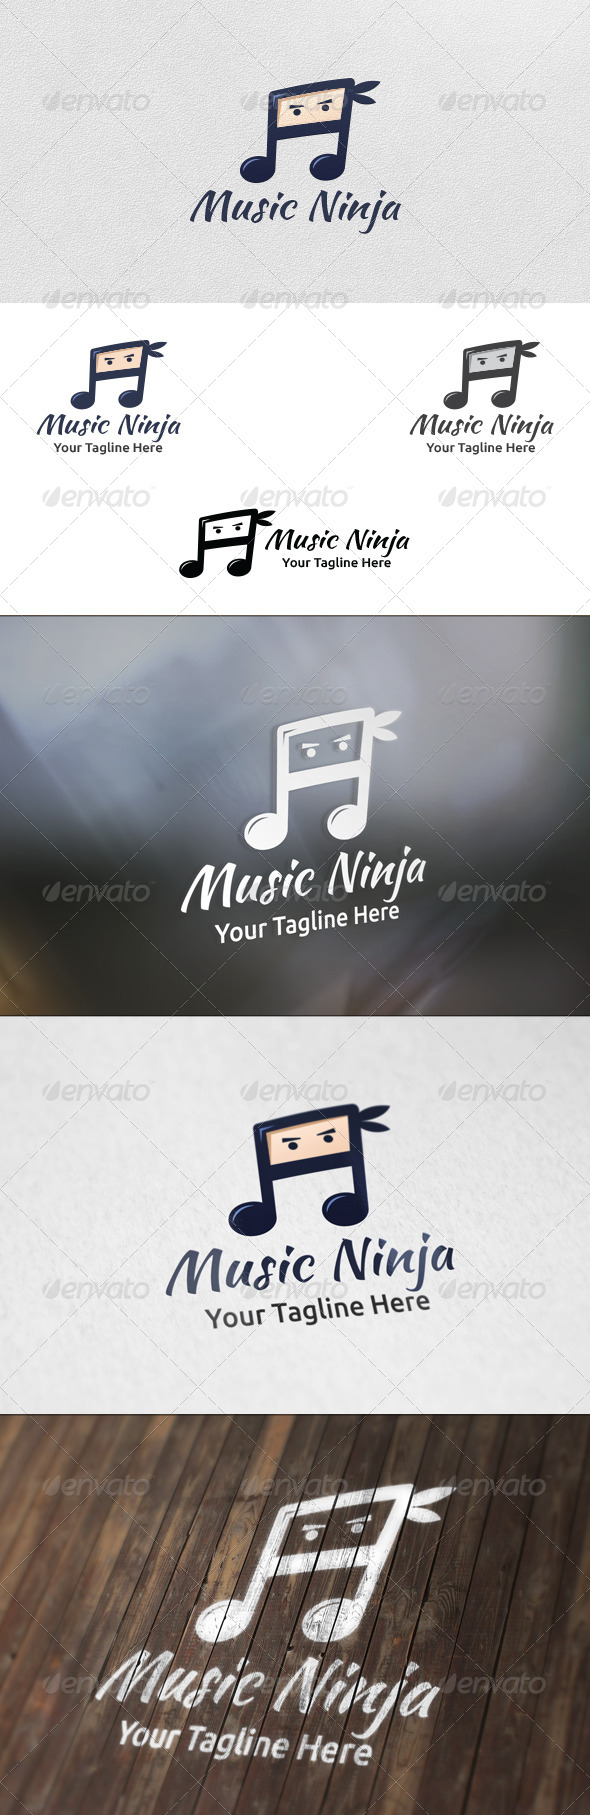 Music Ninja - Logo Template - Humans Logo Templates